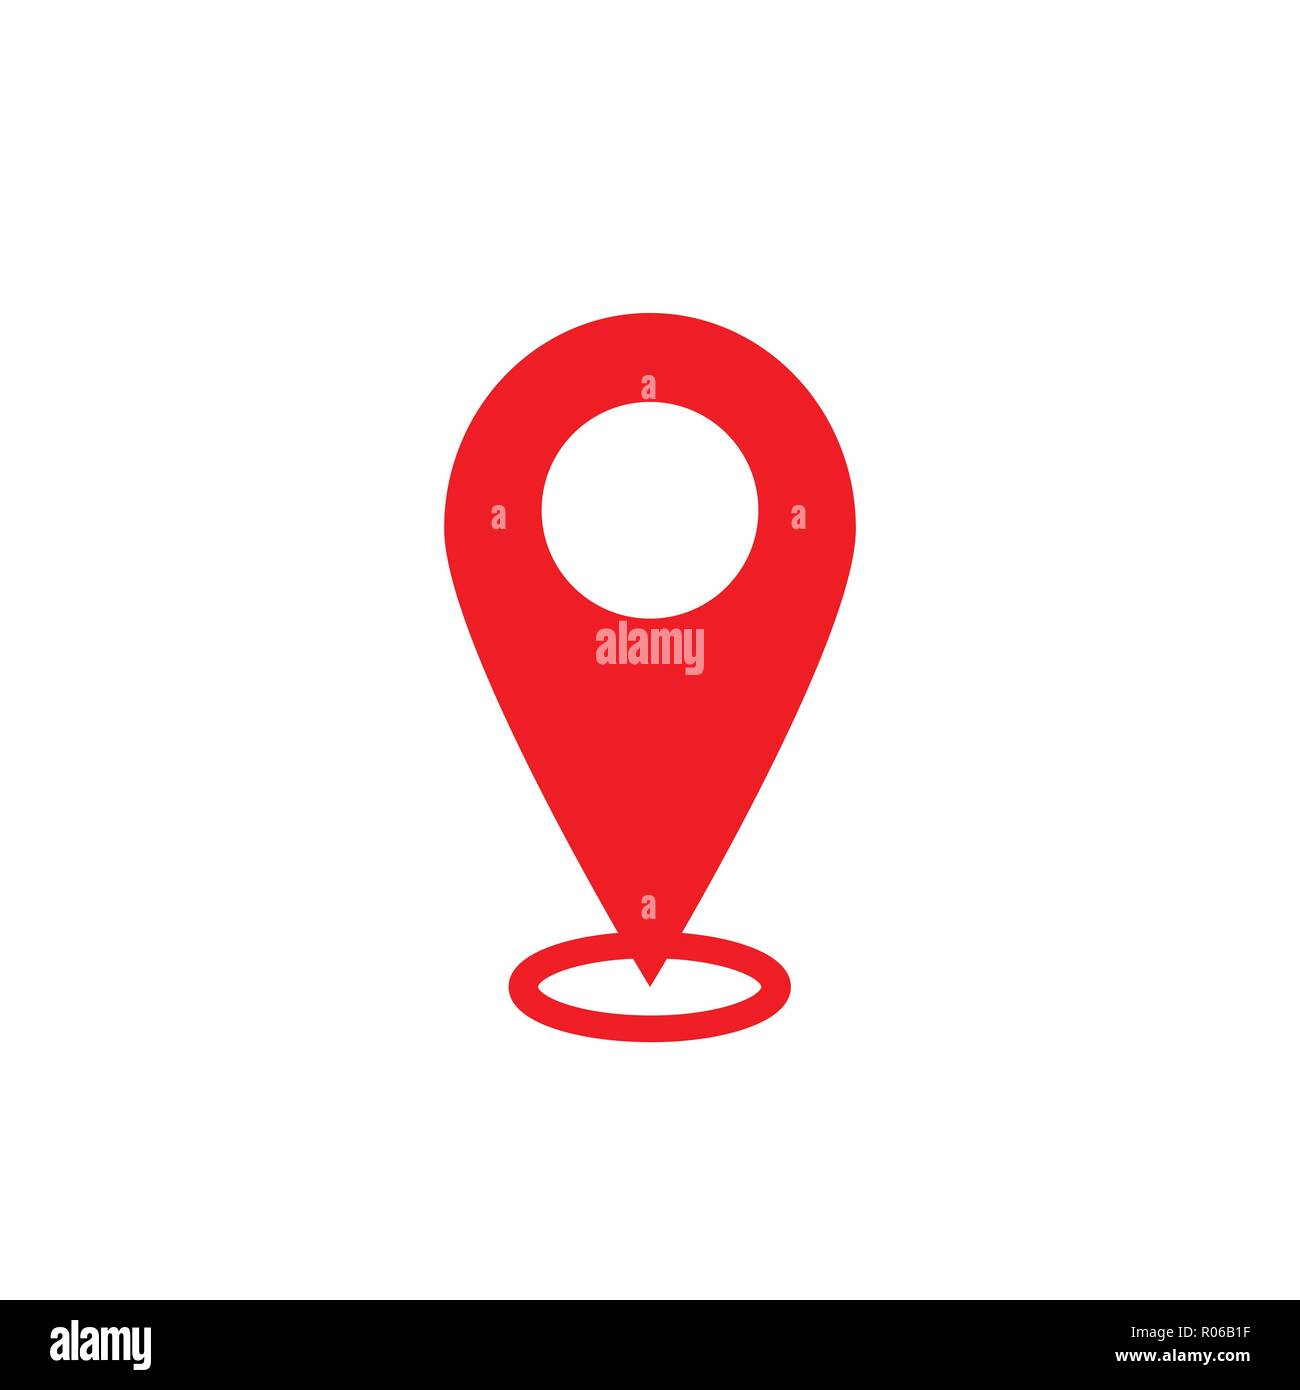 Map pointer icon. GPS location symbol. Flat design. Red on ... on phone symbol, services symbol, print symbol, level symbol, world wide web symbol, links symbol, map place symbol, map key symbols, menu symbol, map locator symbol, check in symbol, time symbol, map scale symbol, map distance symbol, map pin icon, sign you are here symbol, name symbol, about us symbol, area symbol, map locator icon,